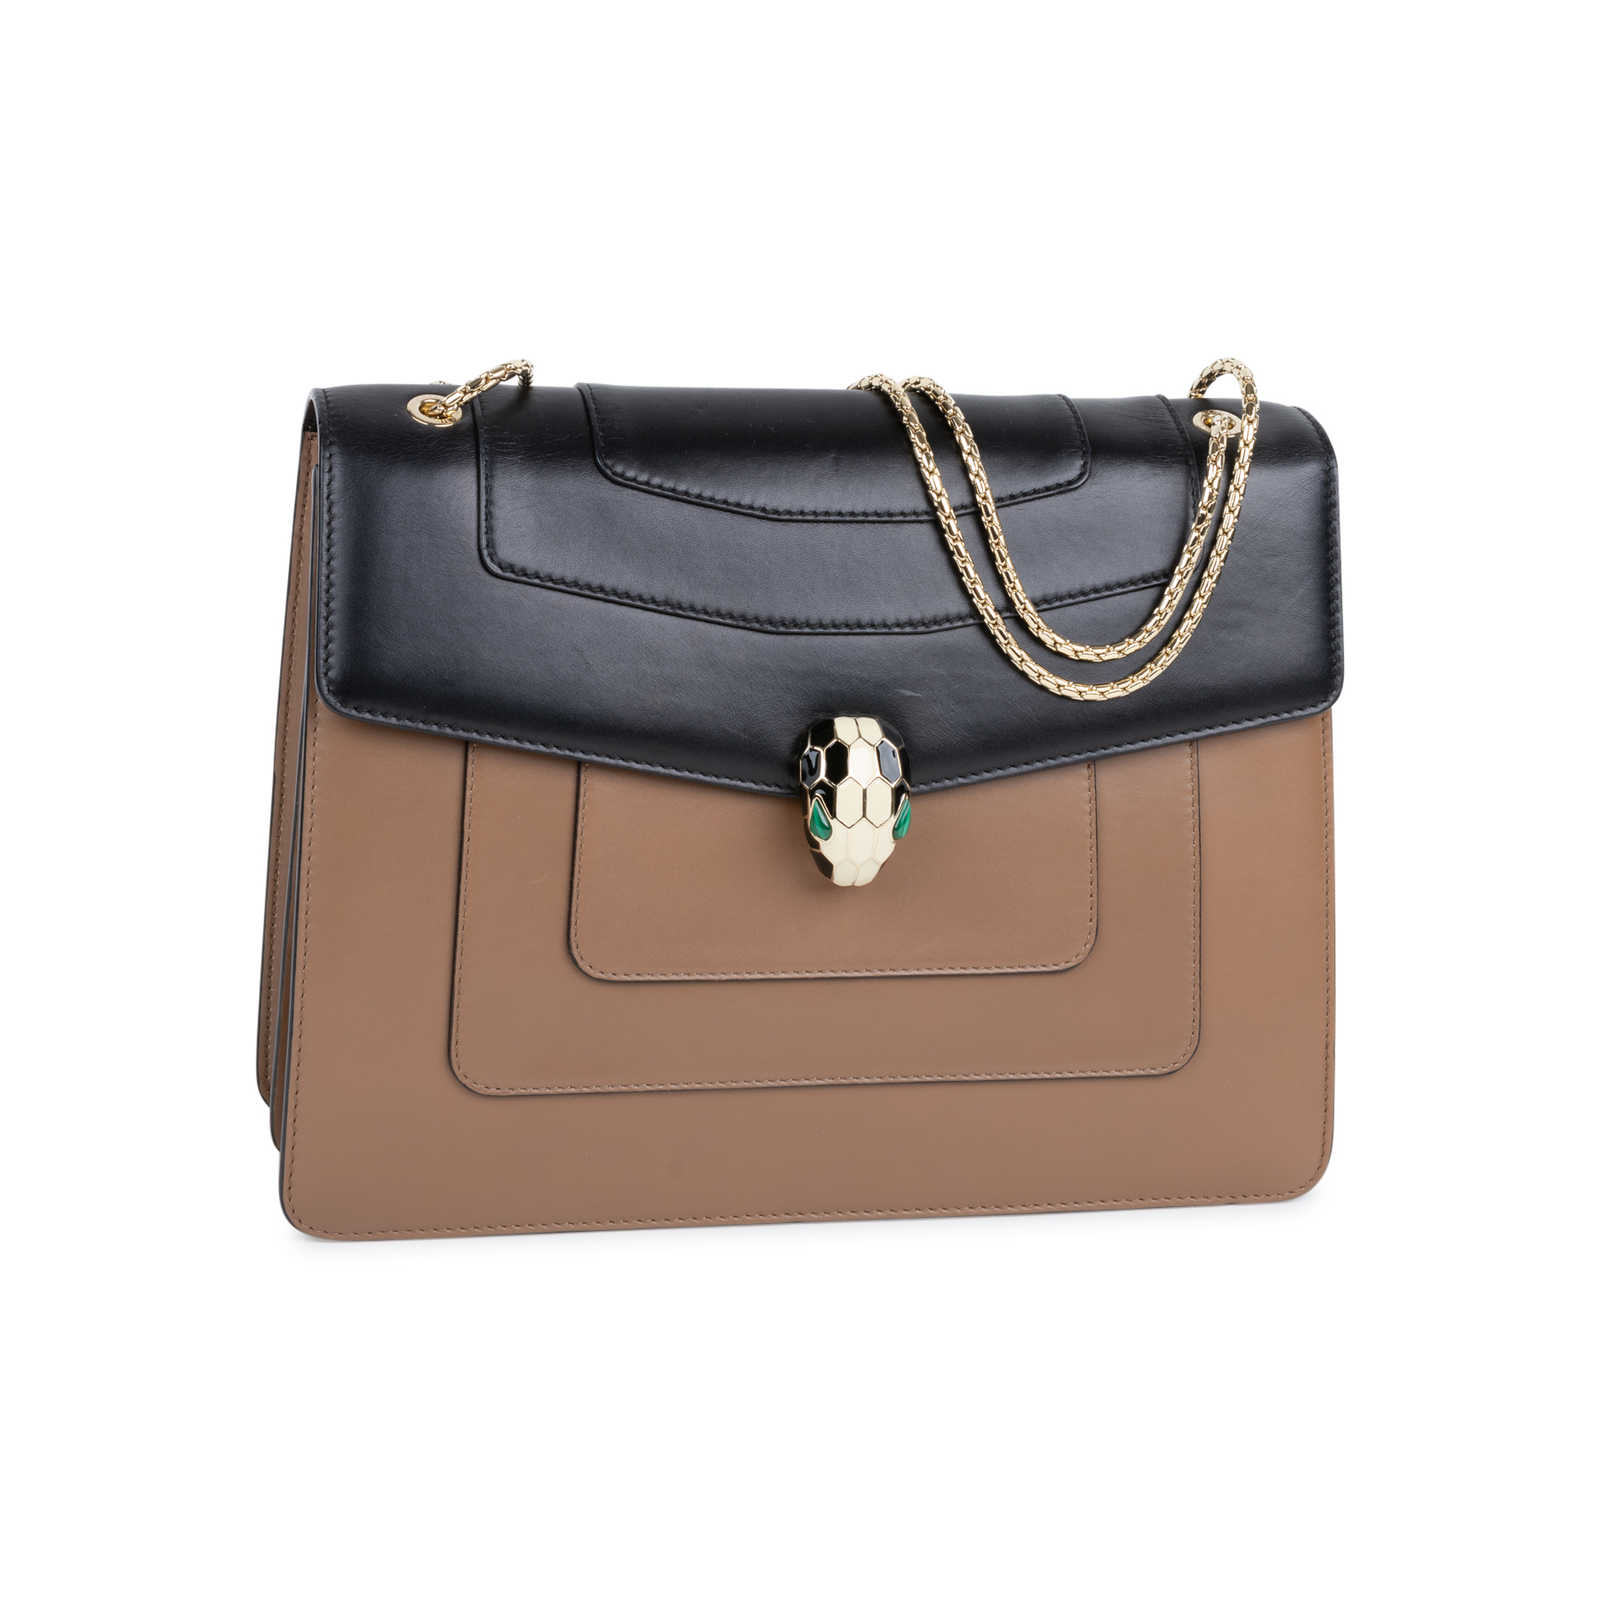 67823ccd9490 ... Authentic Second Hand Bulgari Serpenti Forever Flap Bag (PSS-569-00001)  ...